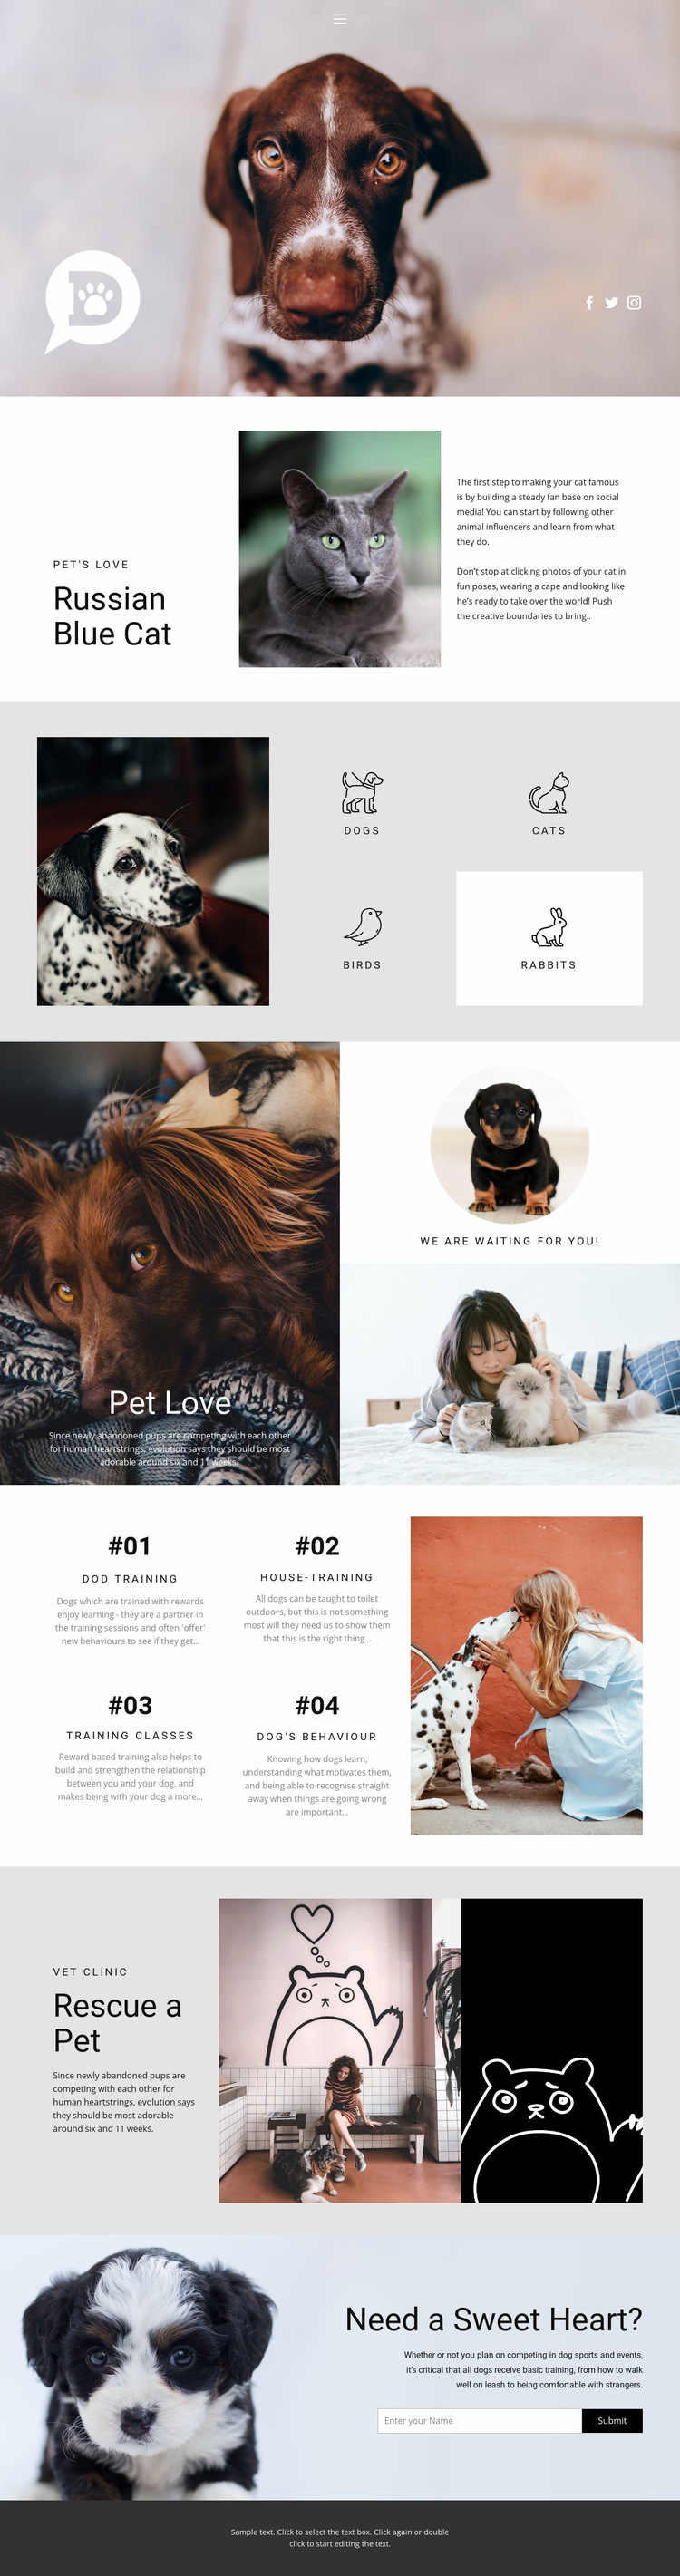 Care for pets and animals Web Page Design